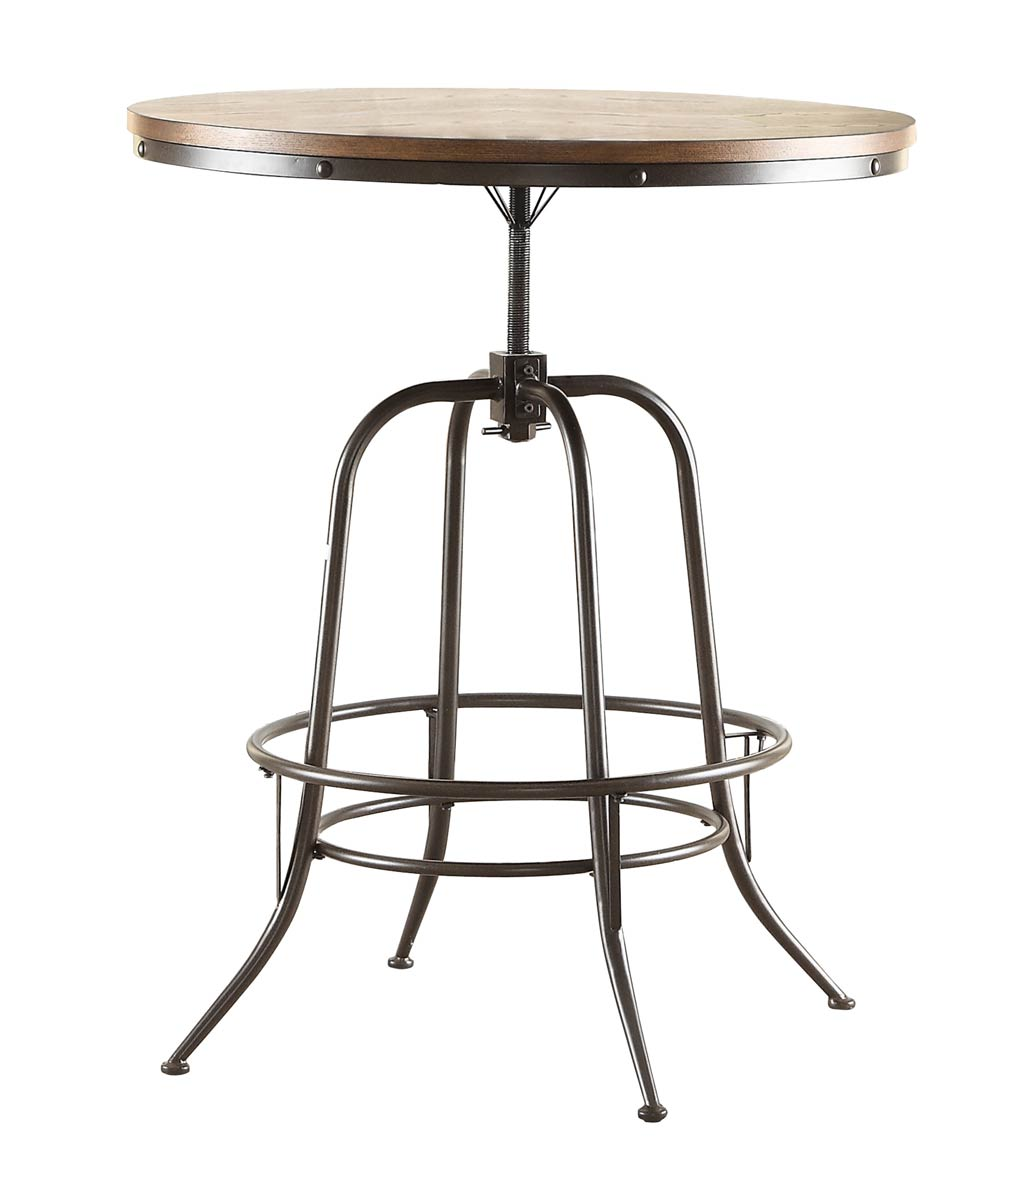 Homelegance Angstrom Round Counter Height Table - Adjustable Height